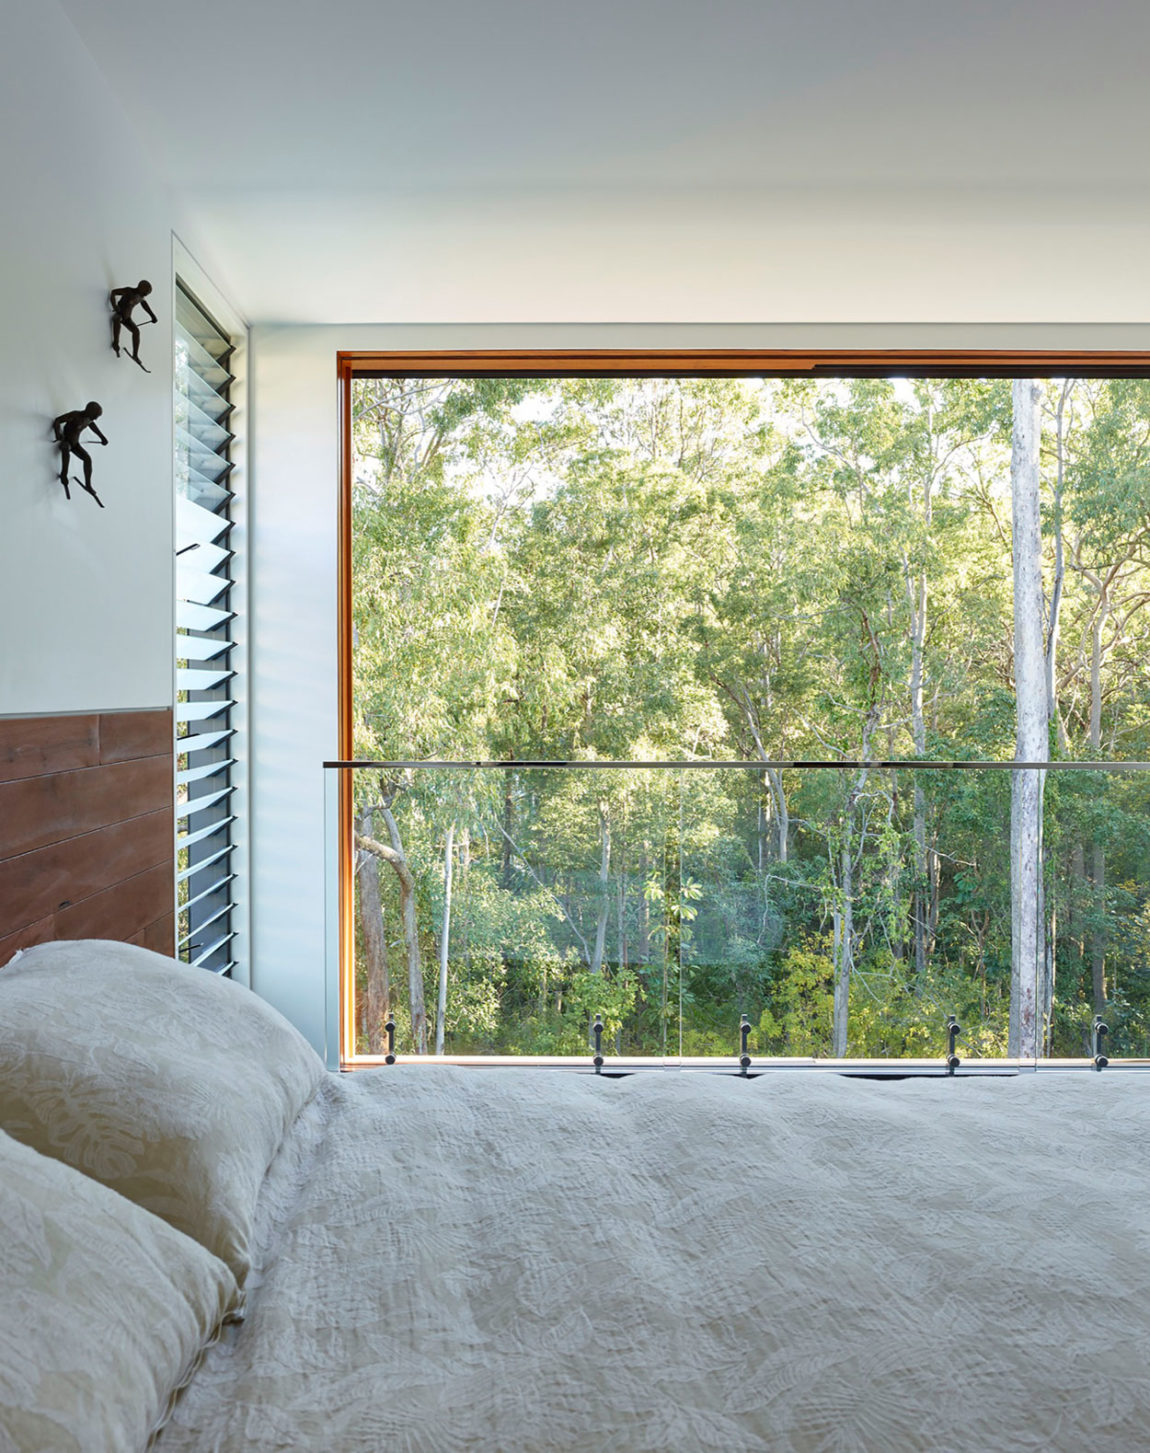 Fifth Avenue by O'Neill Architecture (11)